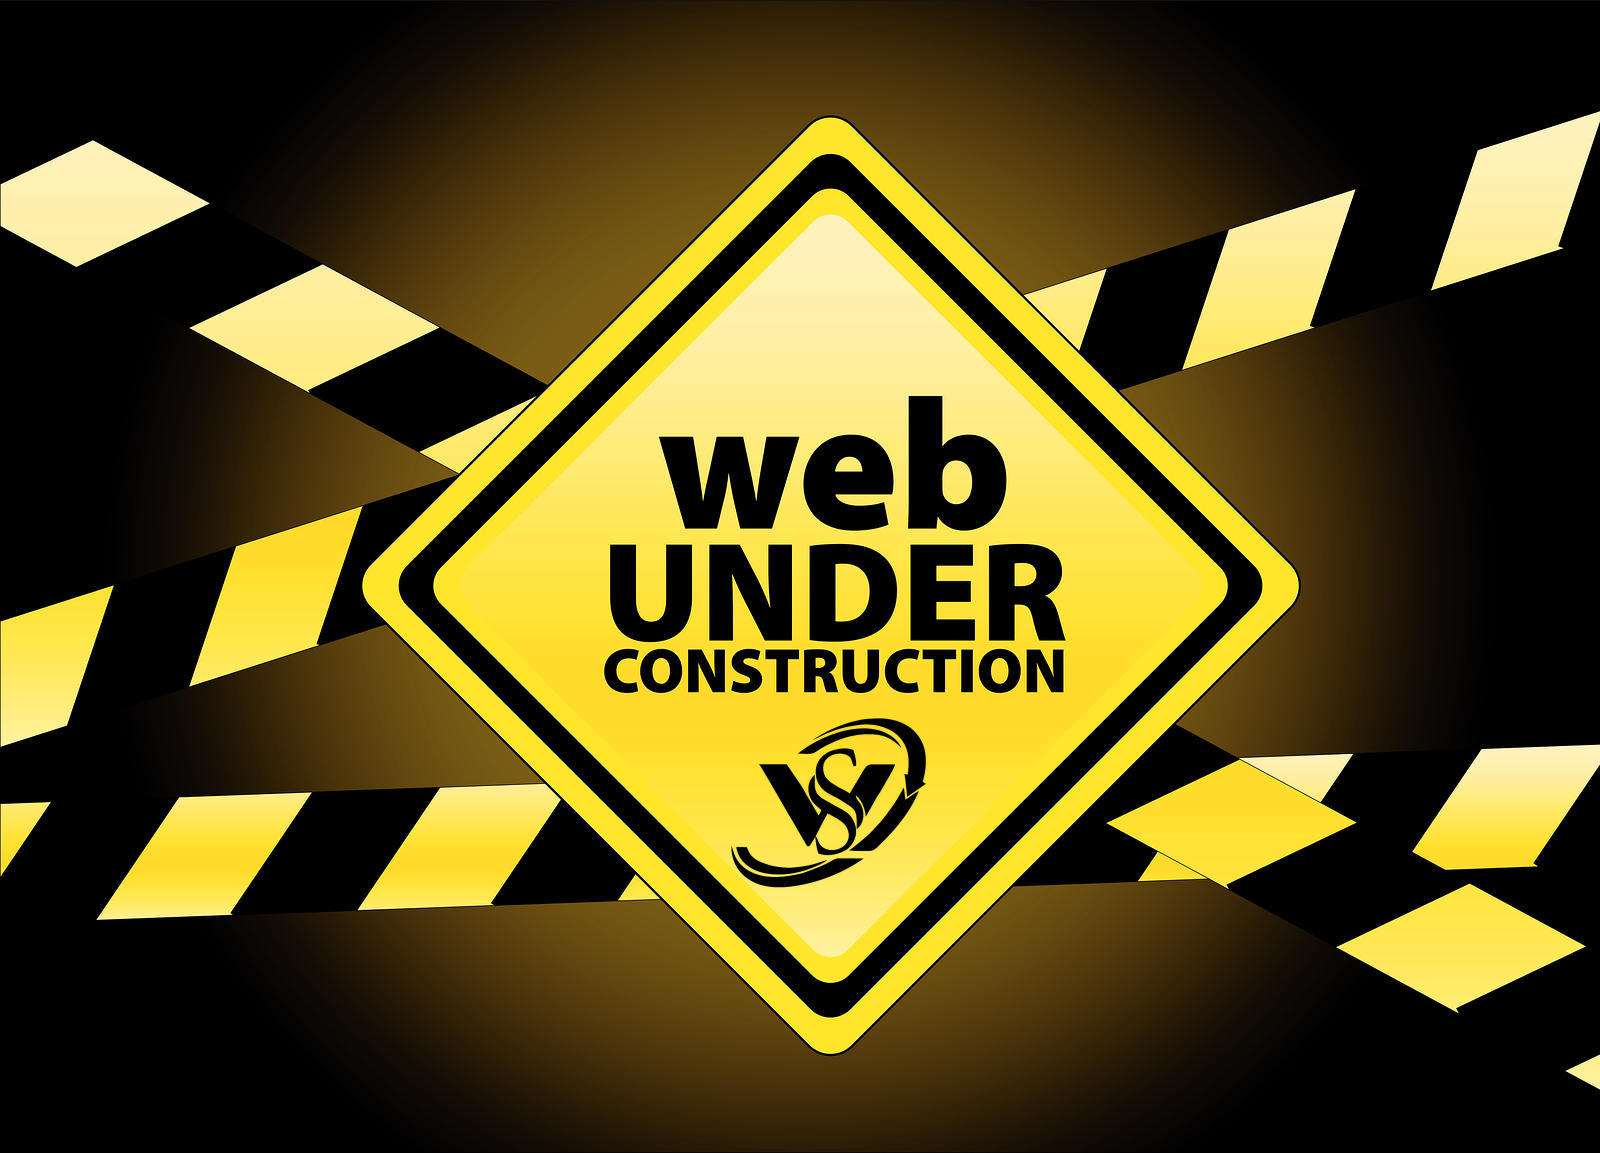 Web-under-construction_2